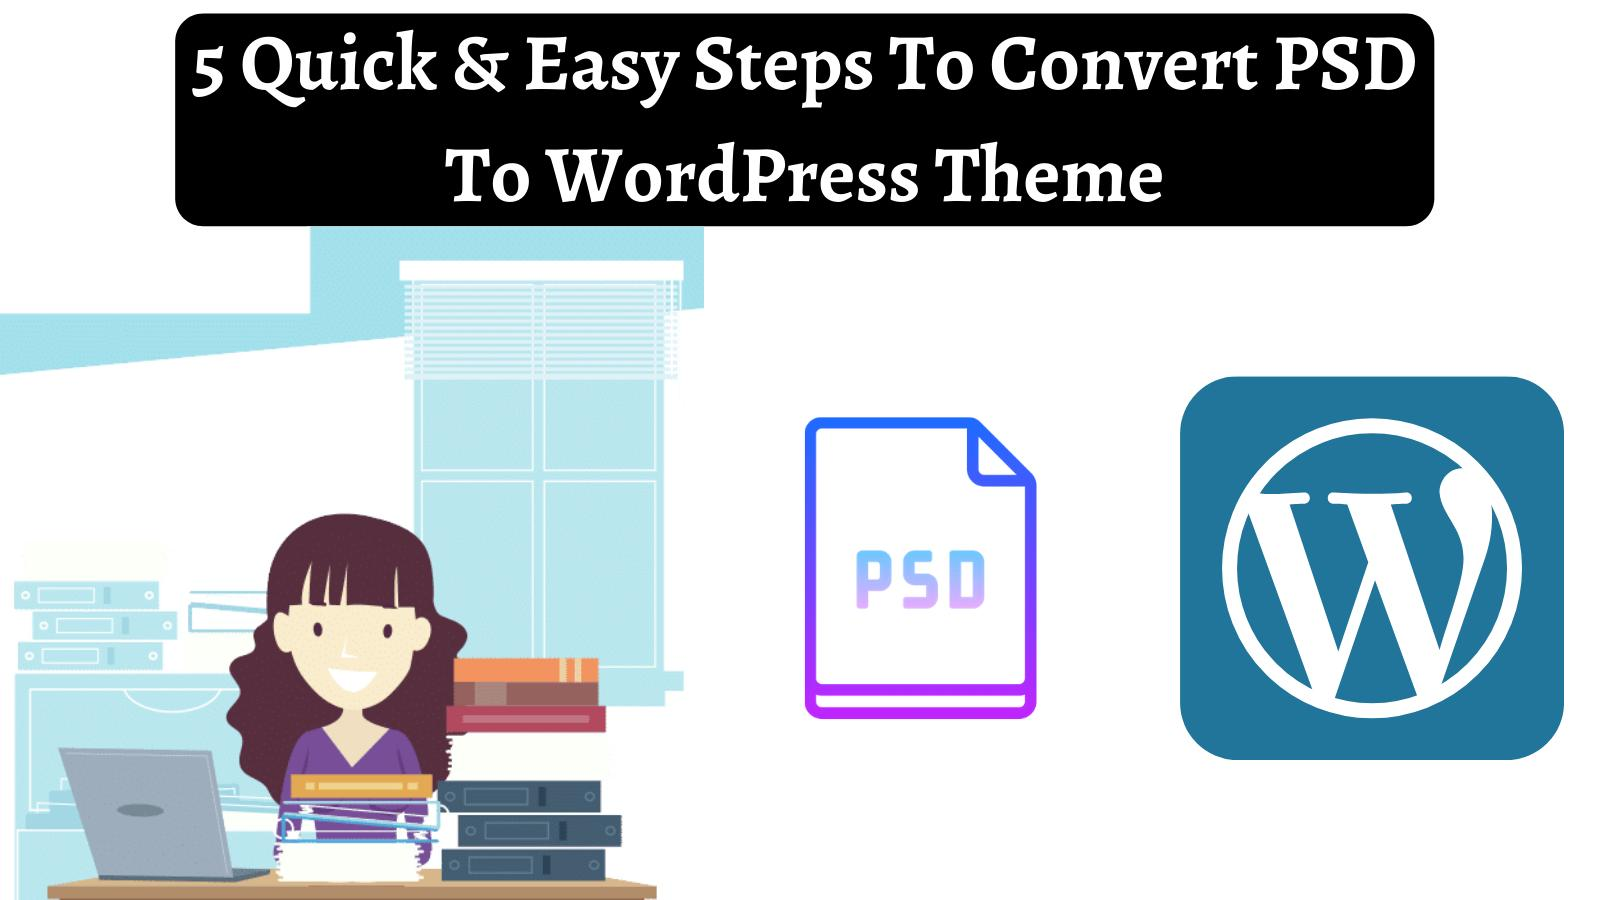 5 Quick & Easy Steps To Convert PSD To WordPress Theme